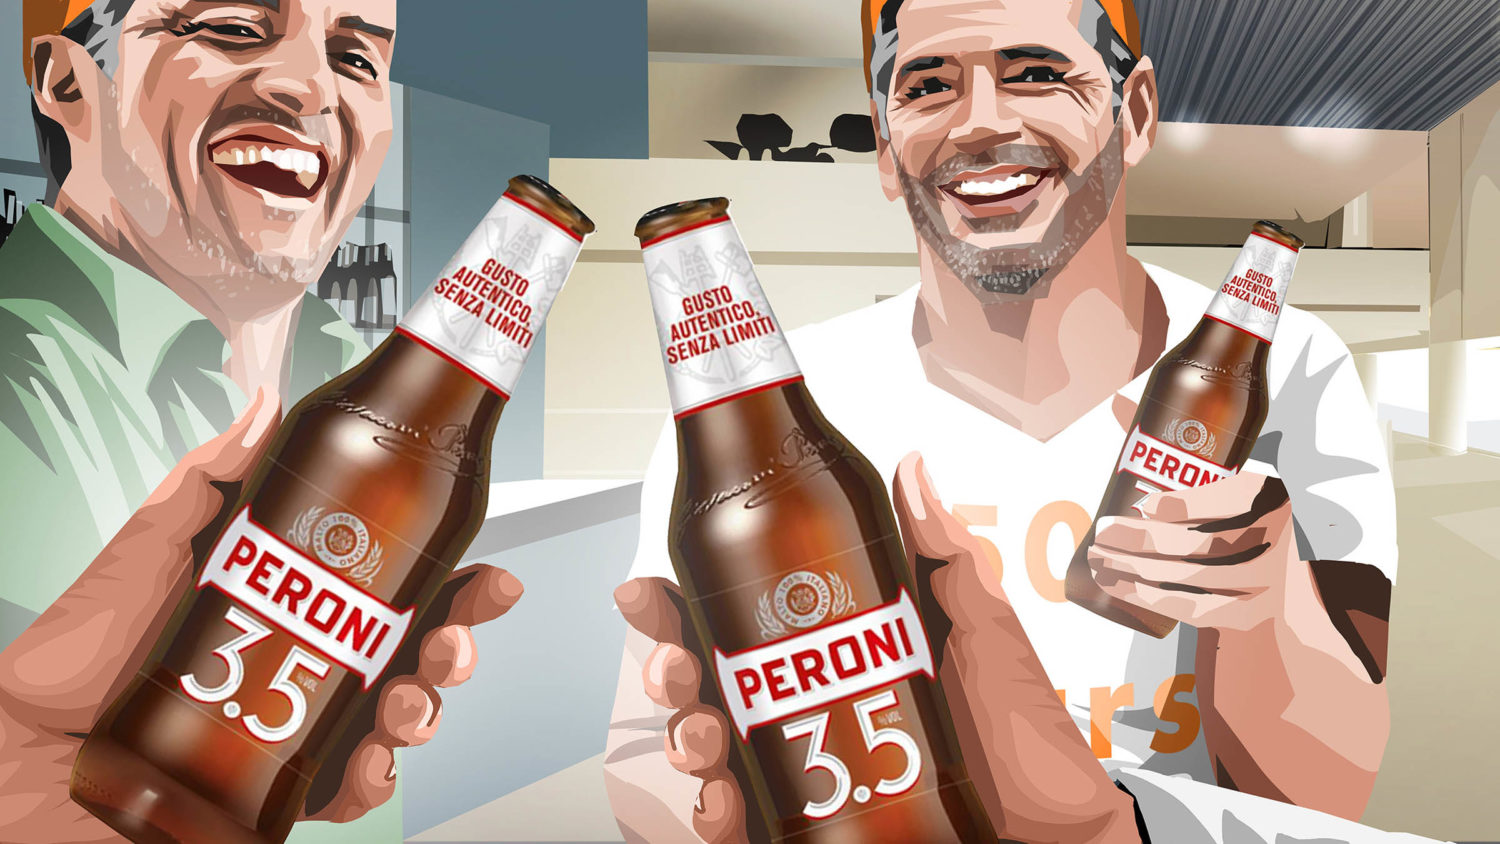 Eat Sleep And Design Peroni Trip Storyboard